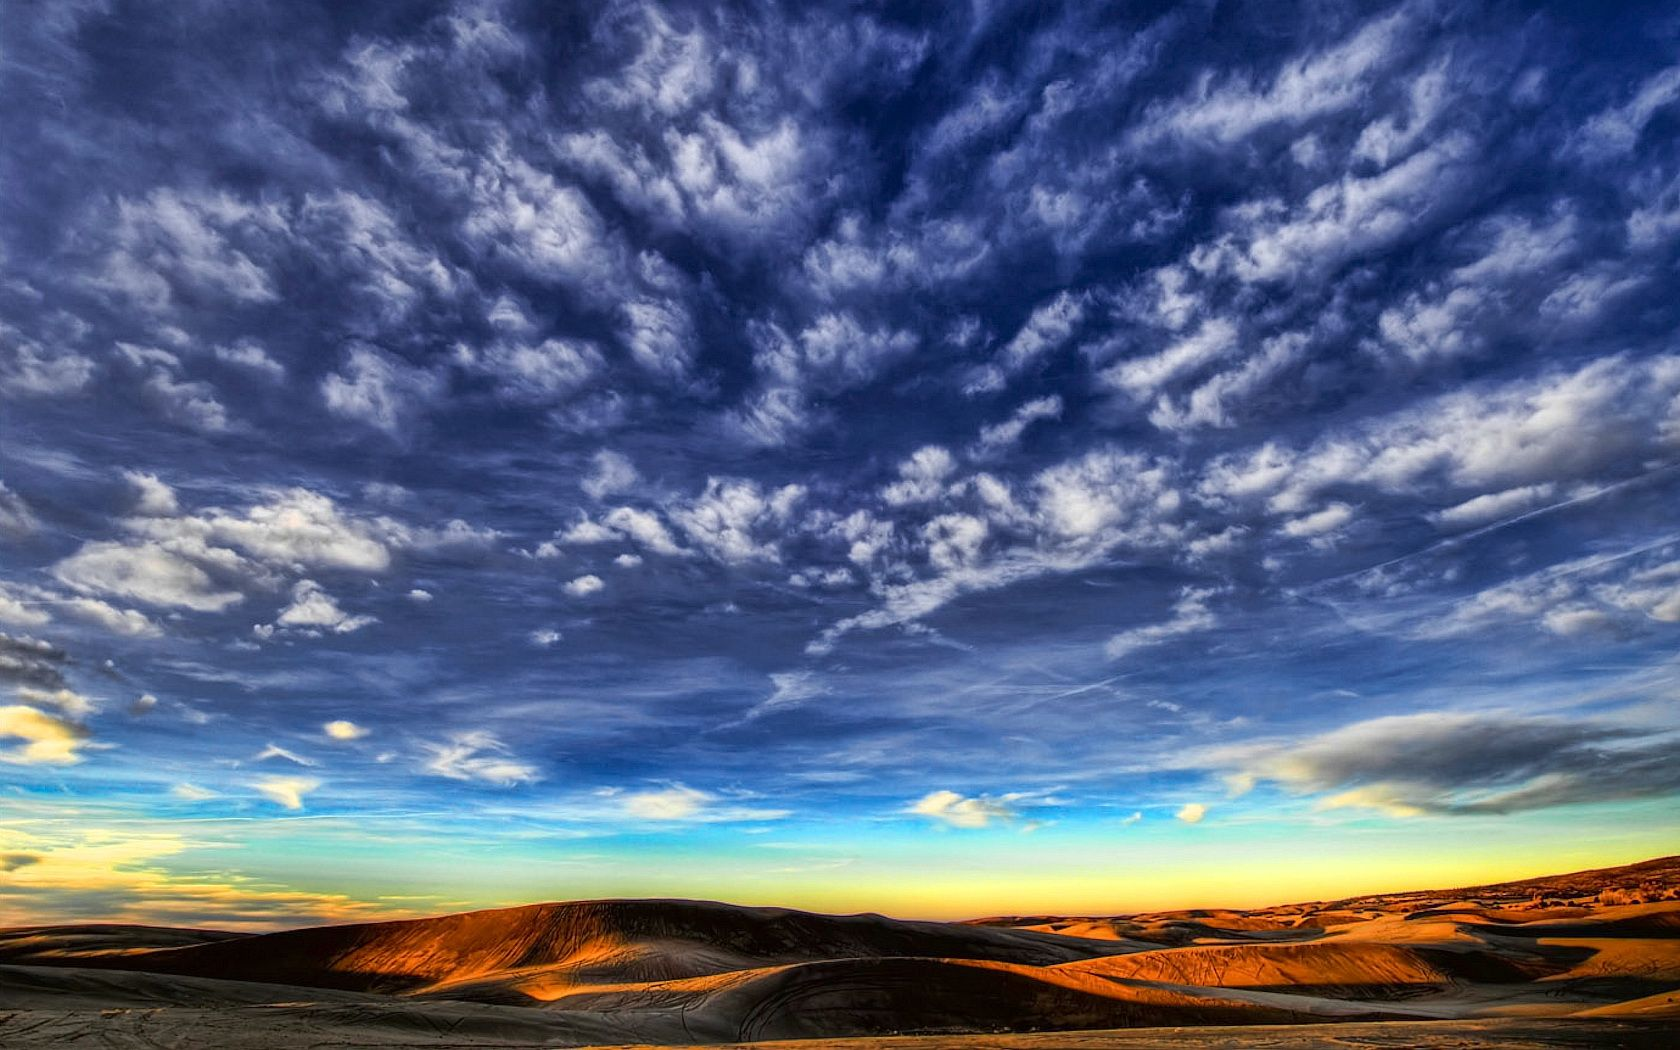 Weather Live Scenery Background Sky Photos Clouds